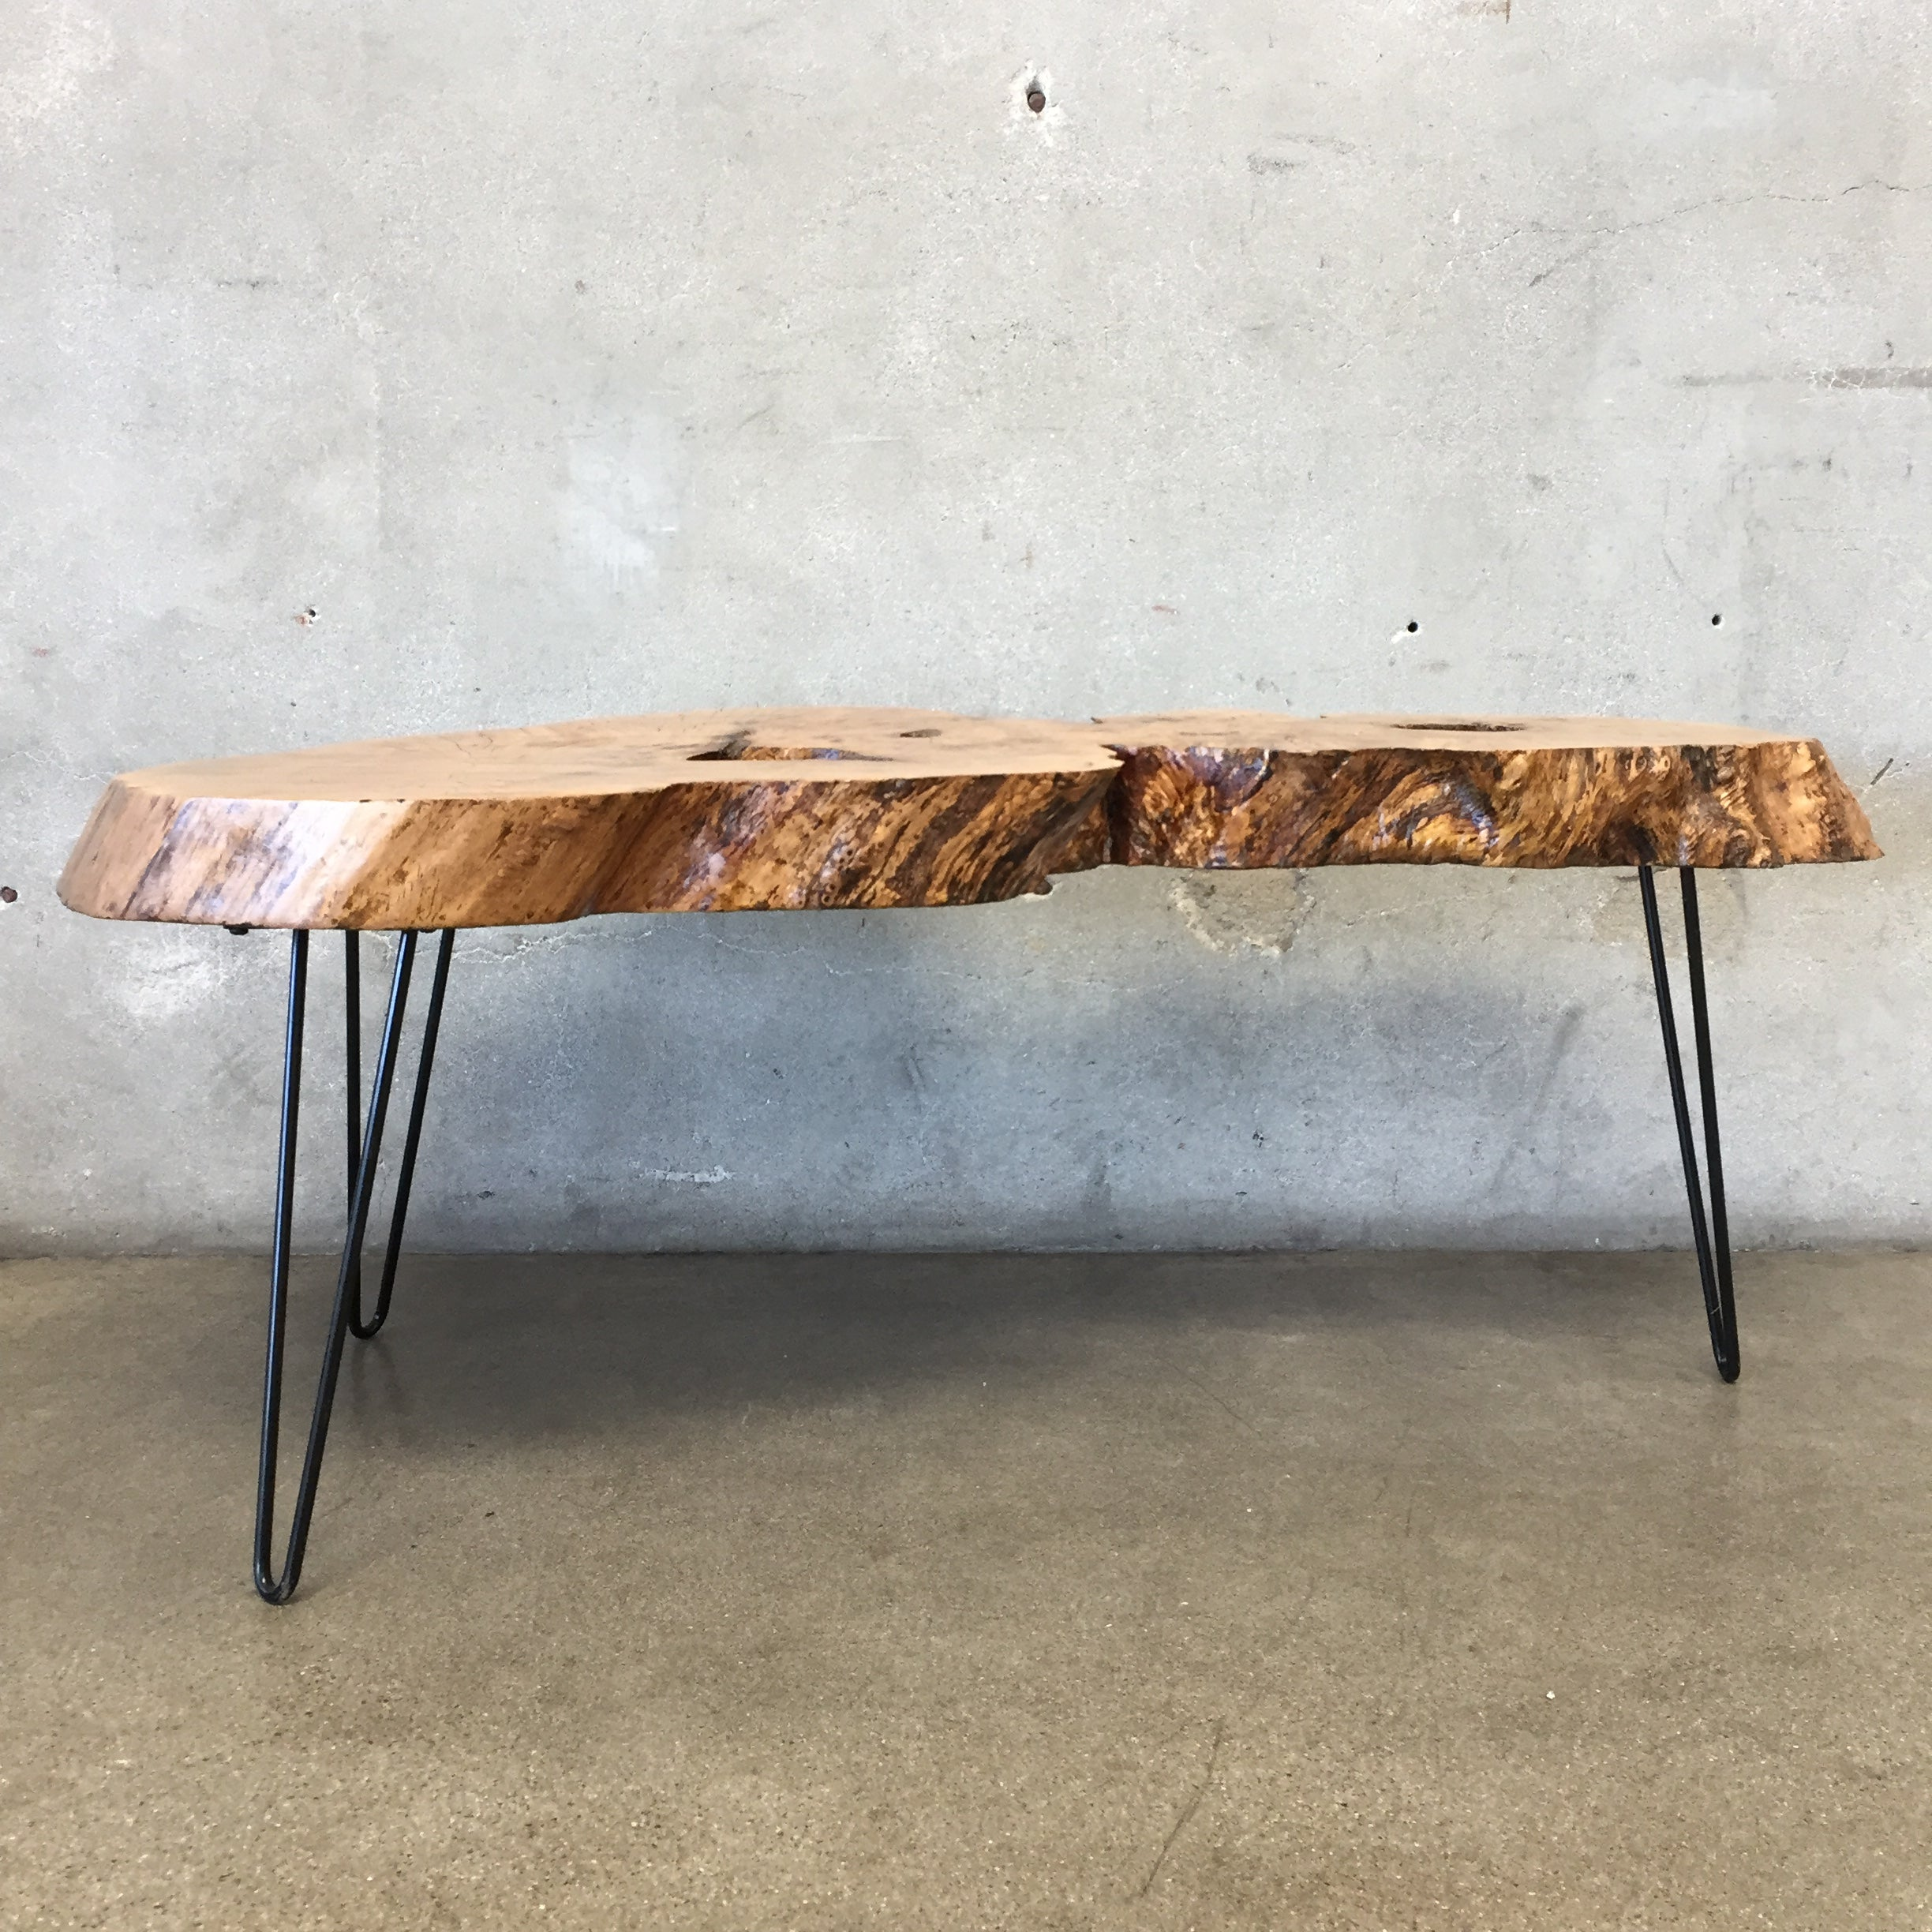 Live Edge Wood Coffee Table – UrbanAmericana